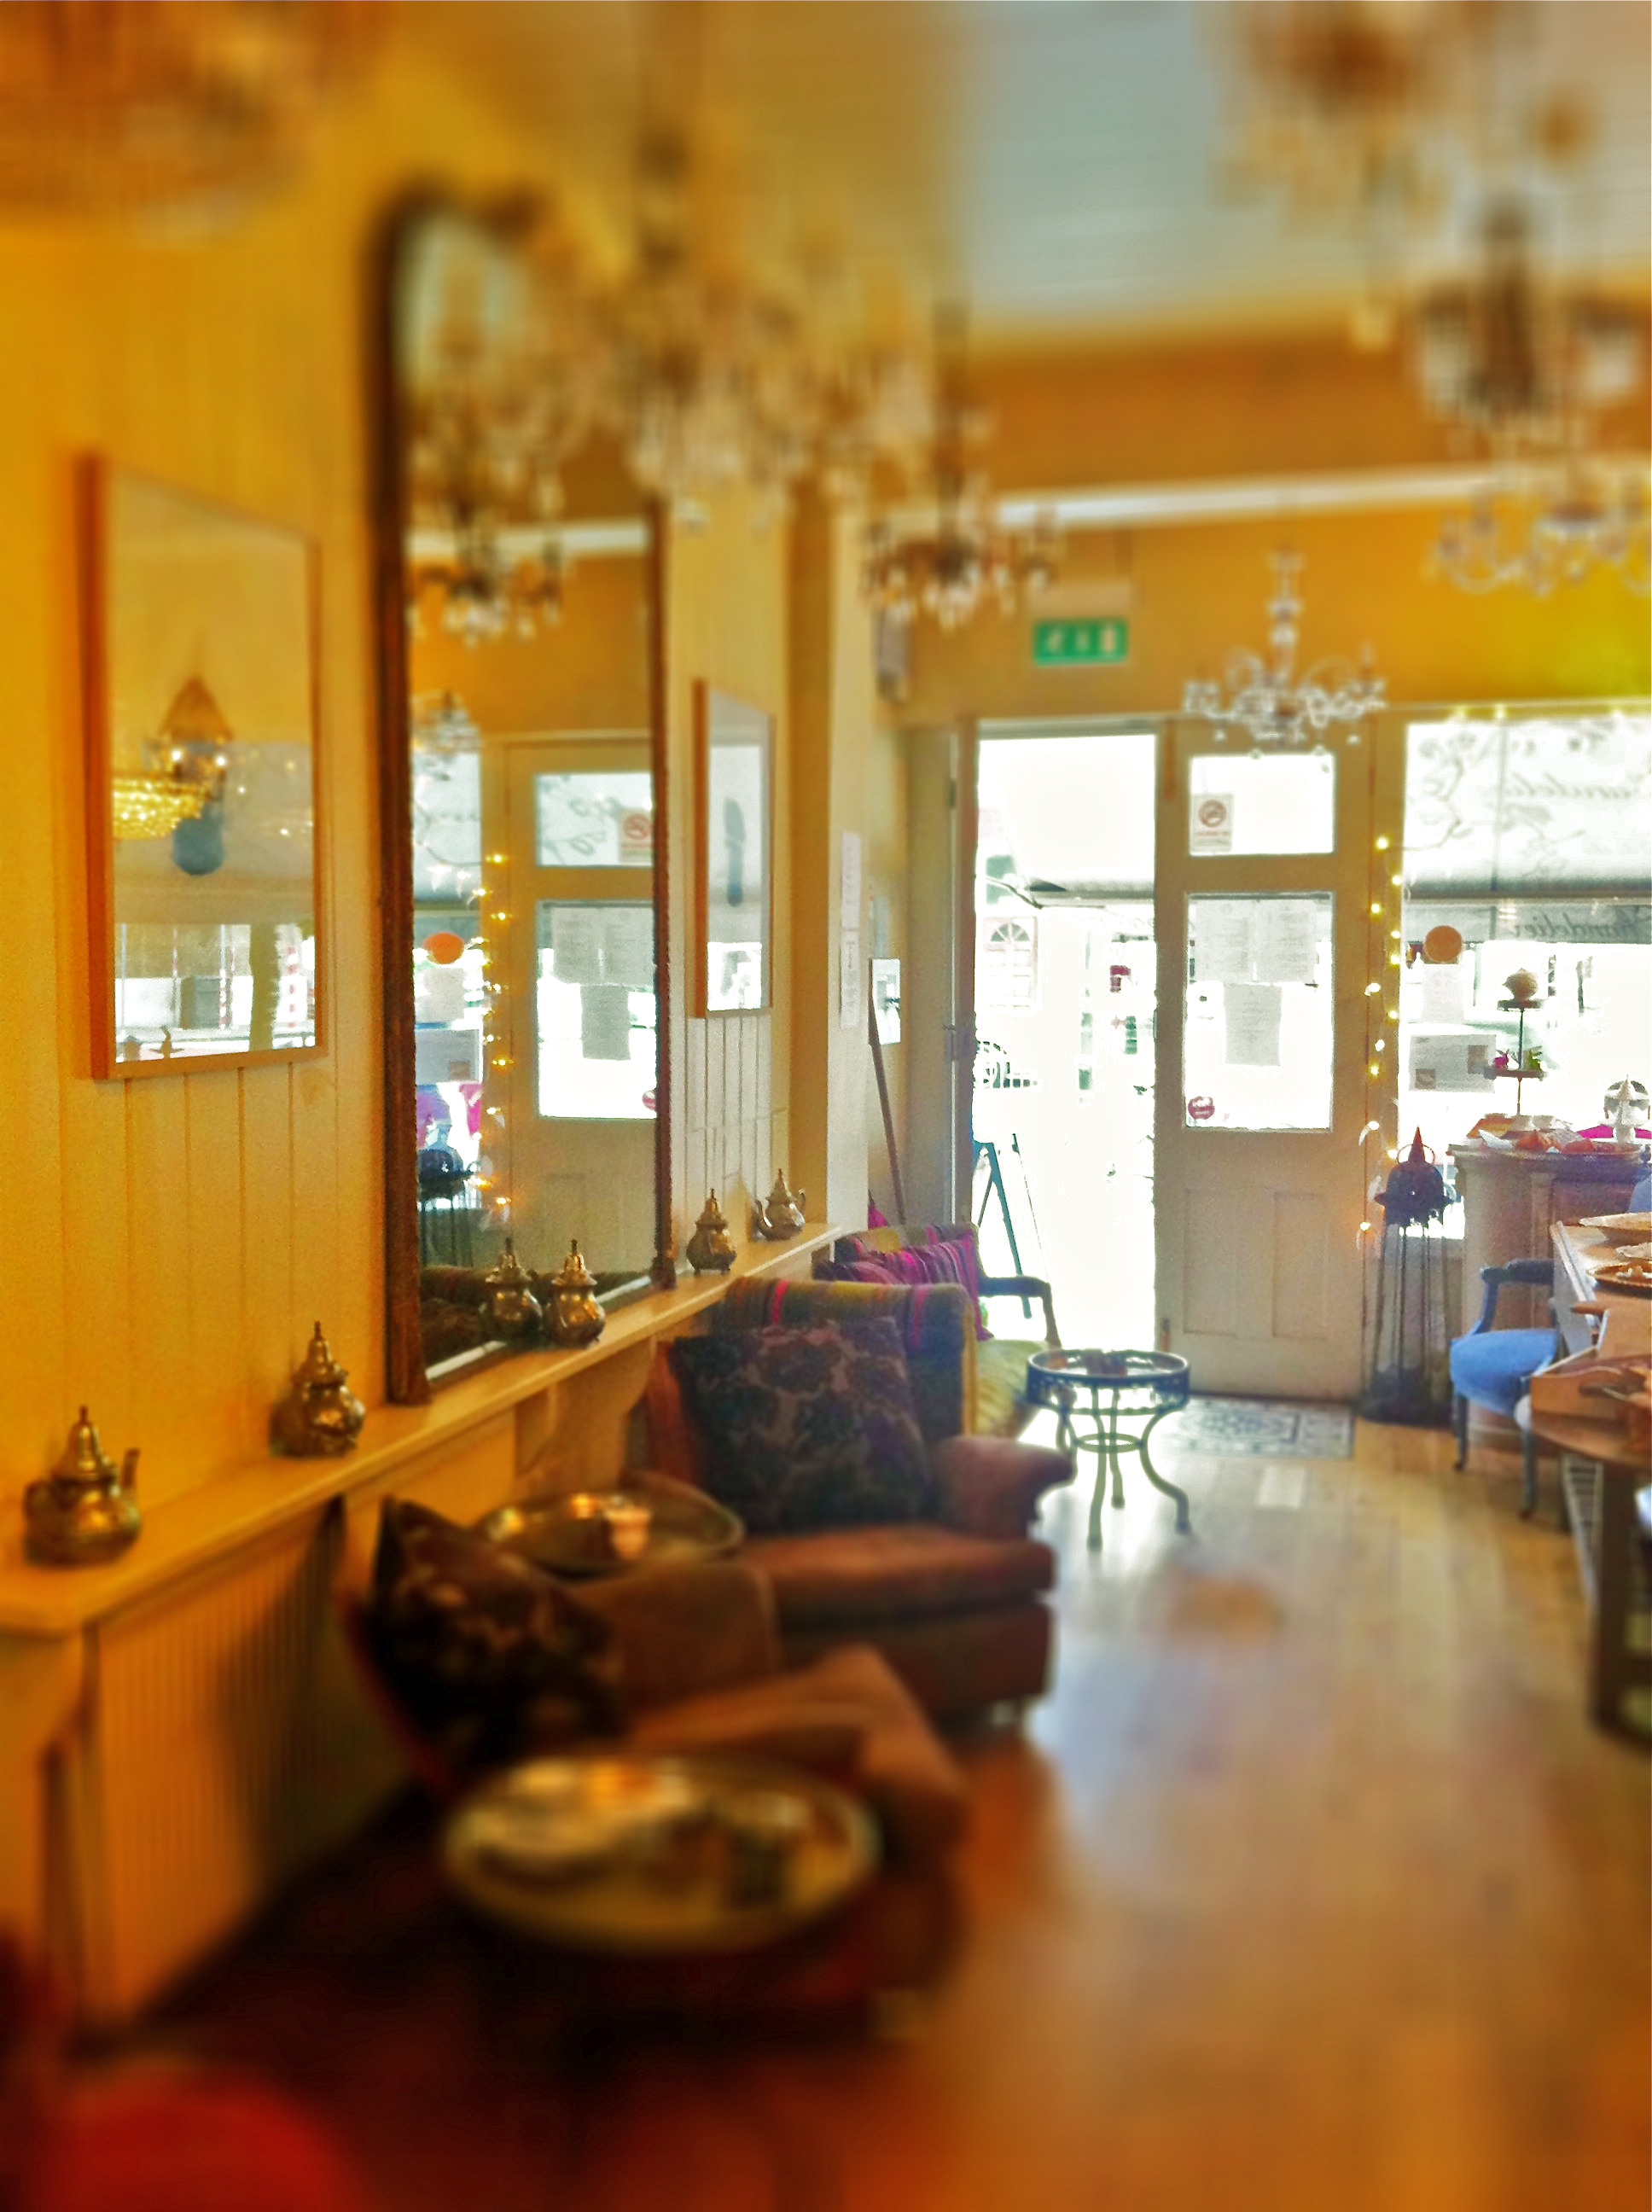 Le Chandelier Tea Shop, Dulwich, London